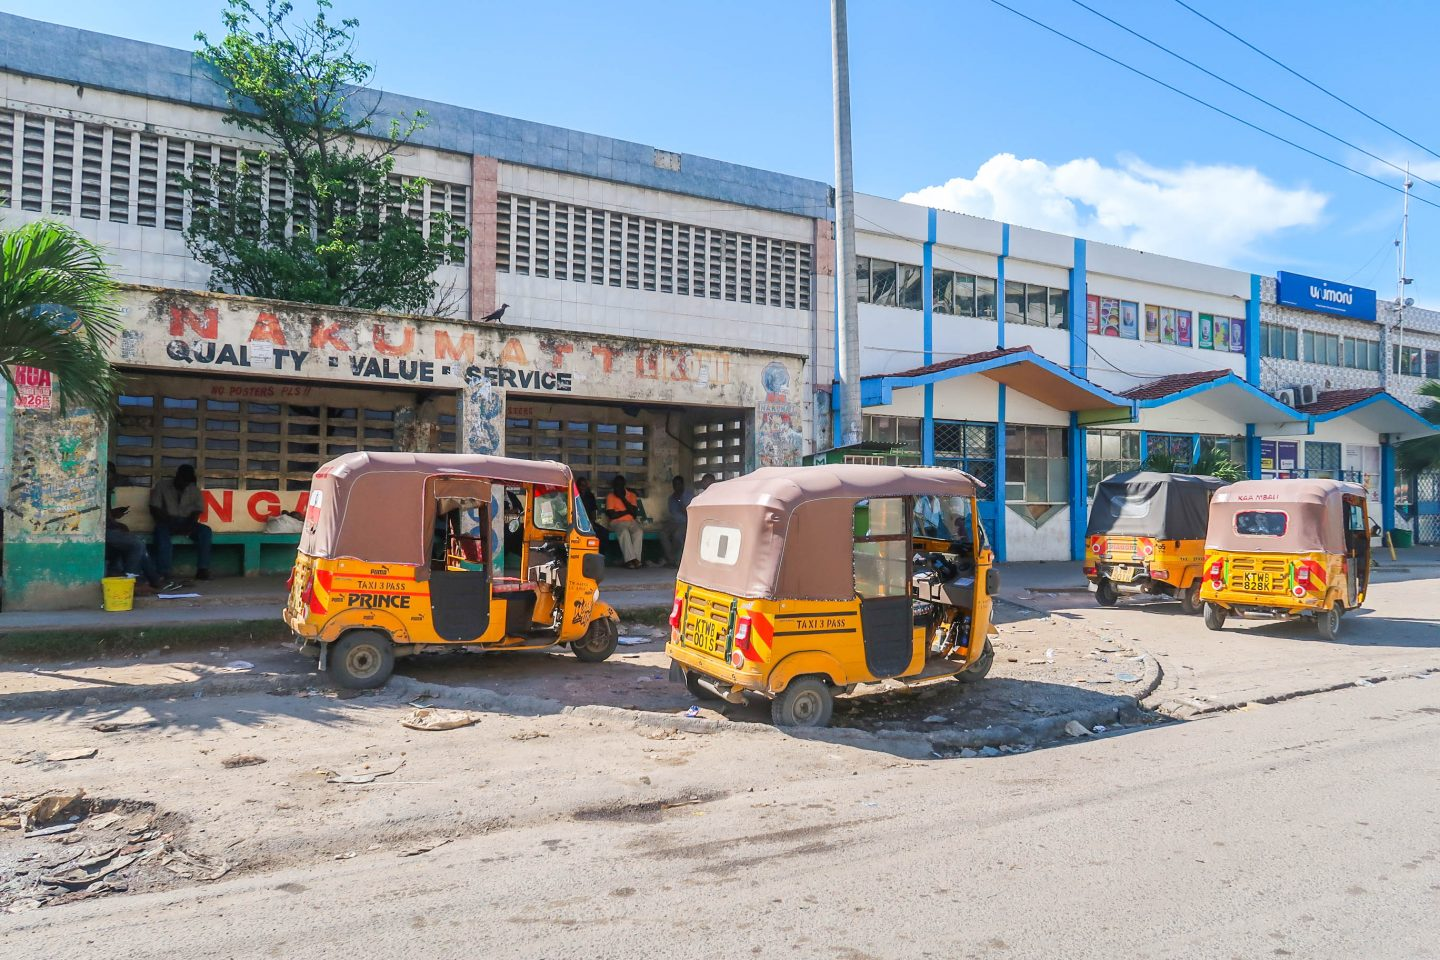 Transport in Mombasa